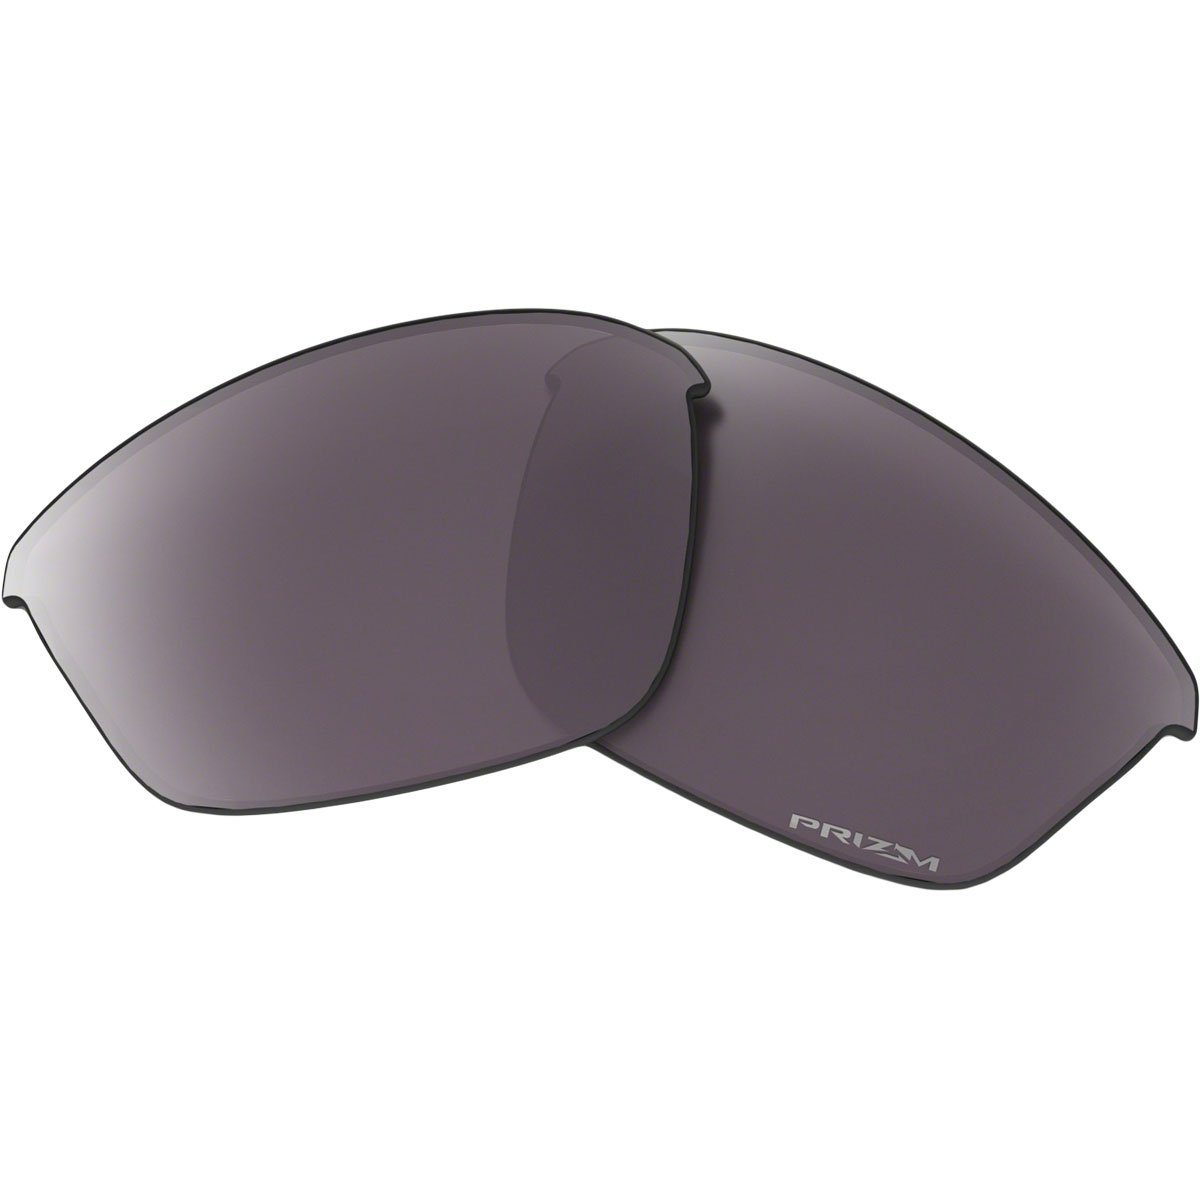 Oakley Half Jacket 2.0 Adult Replacement Lens Sunglass Accessories - Prizm Daily Polarized / One Size